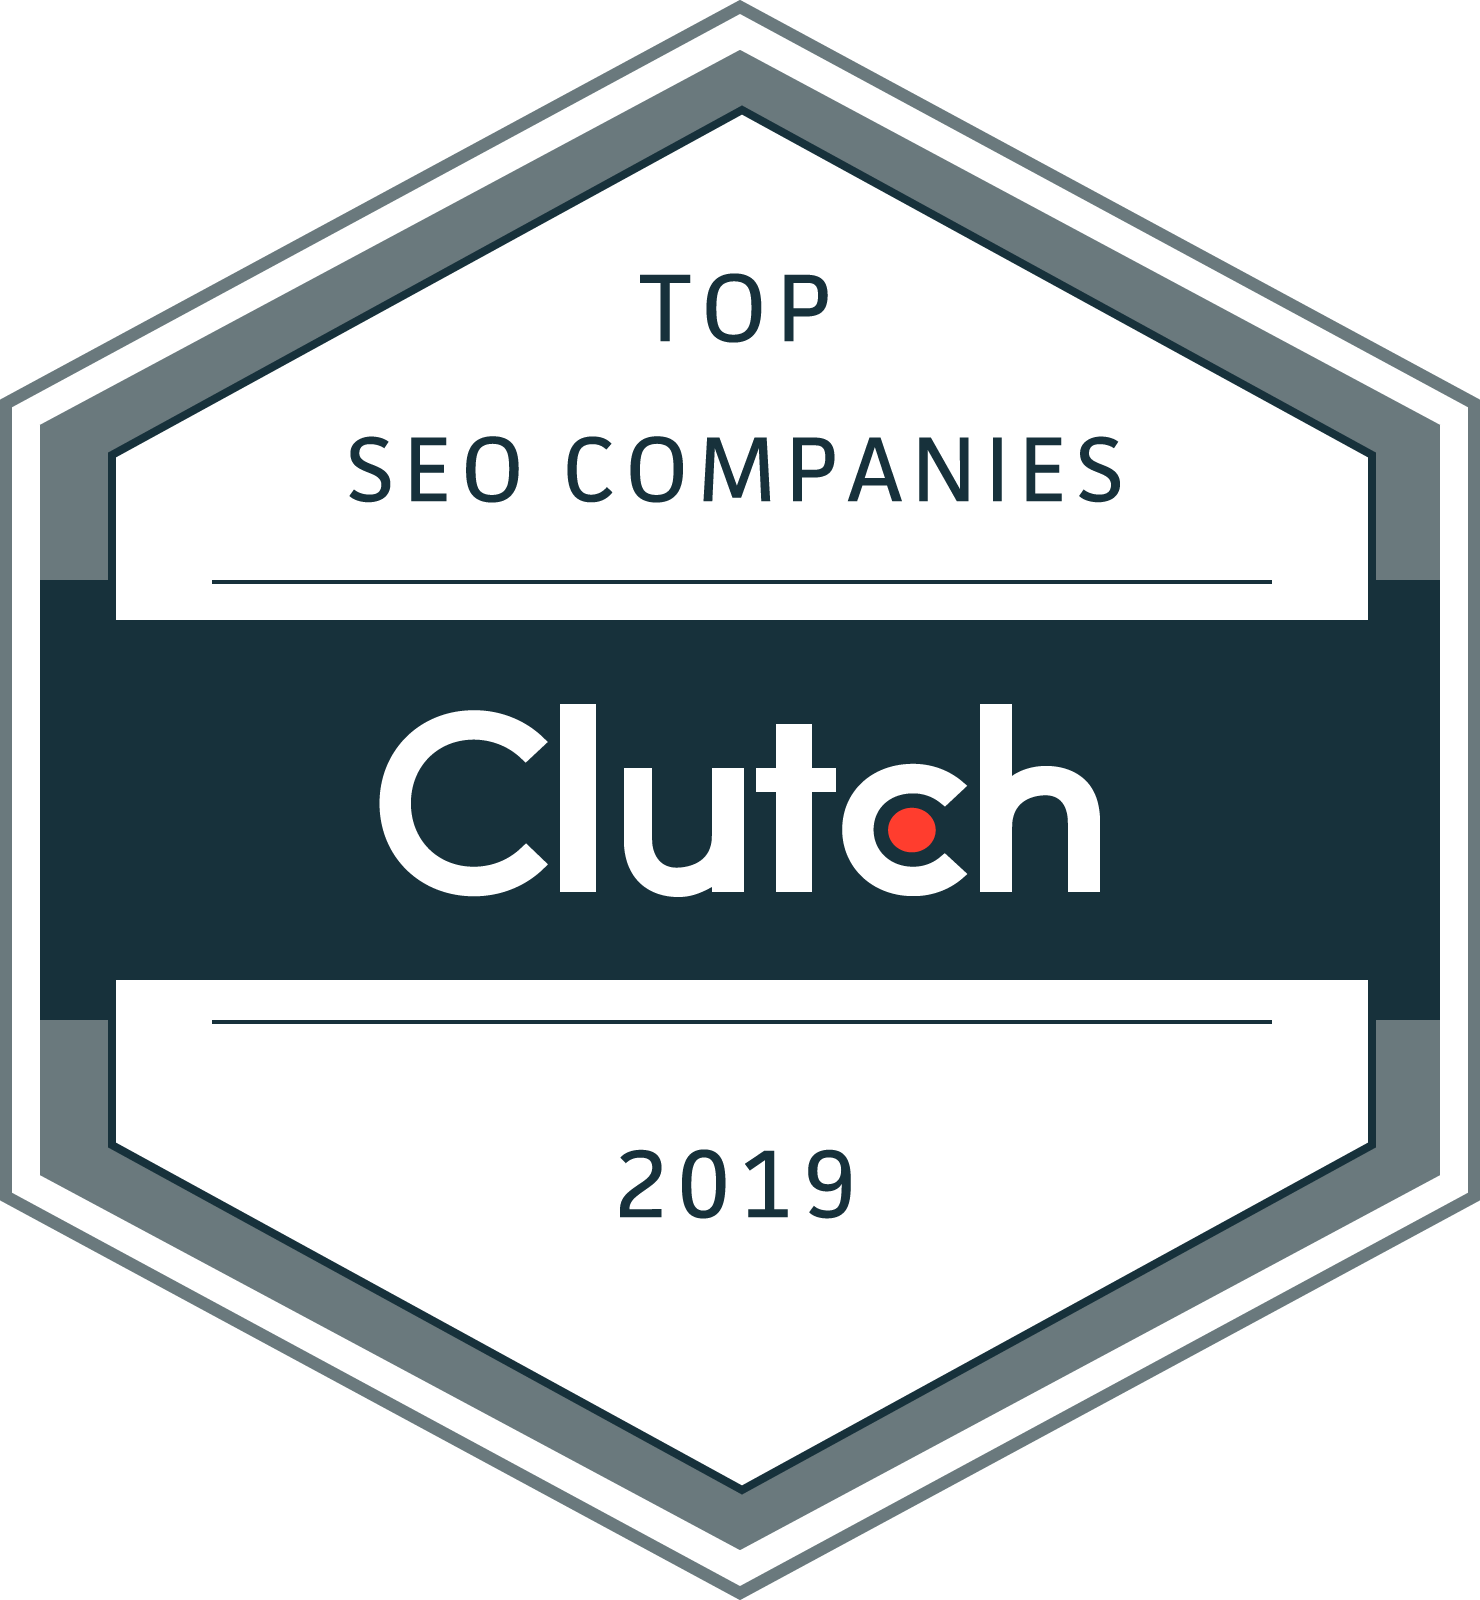 PageTraffic Continues To Be The Top SEO Agency in India On Clutch